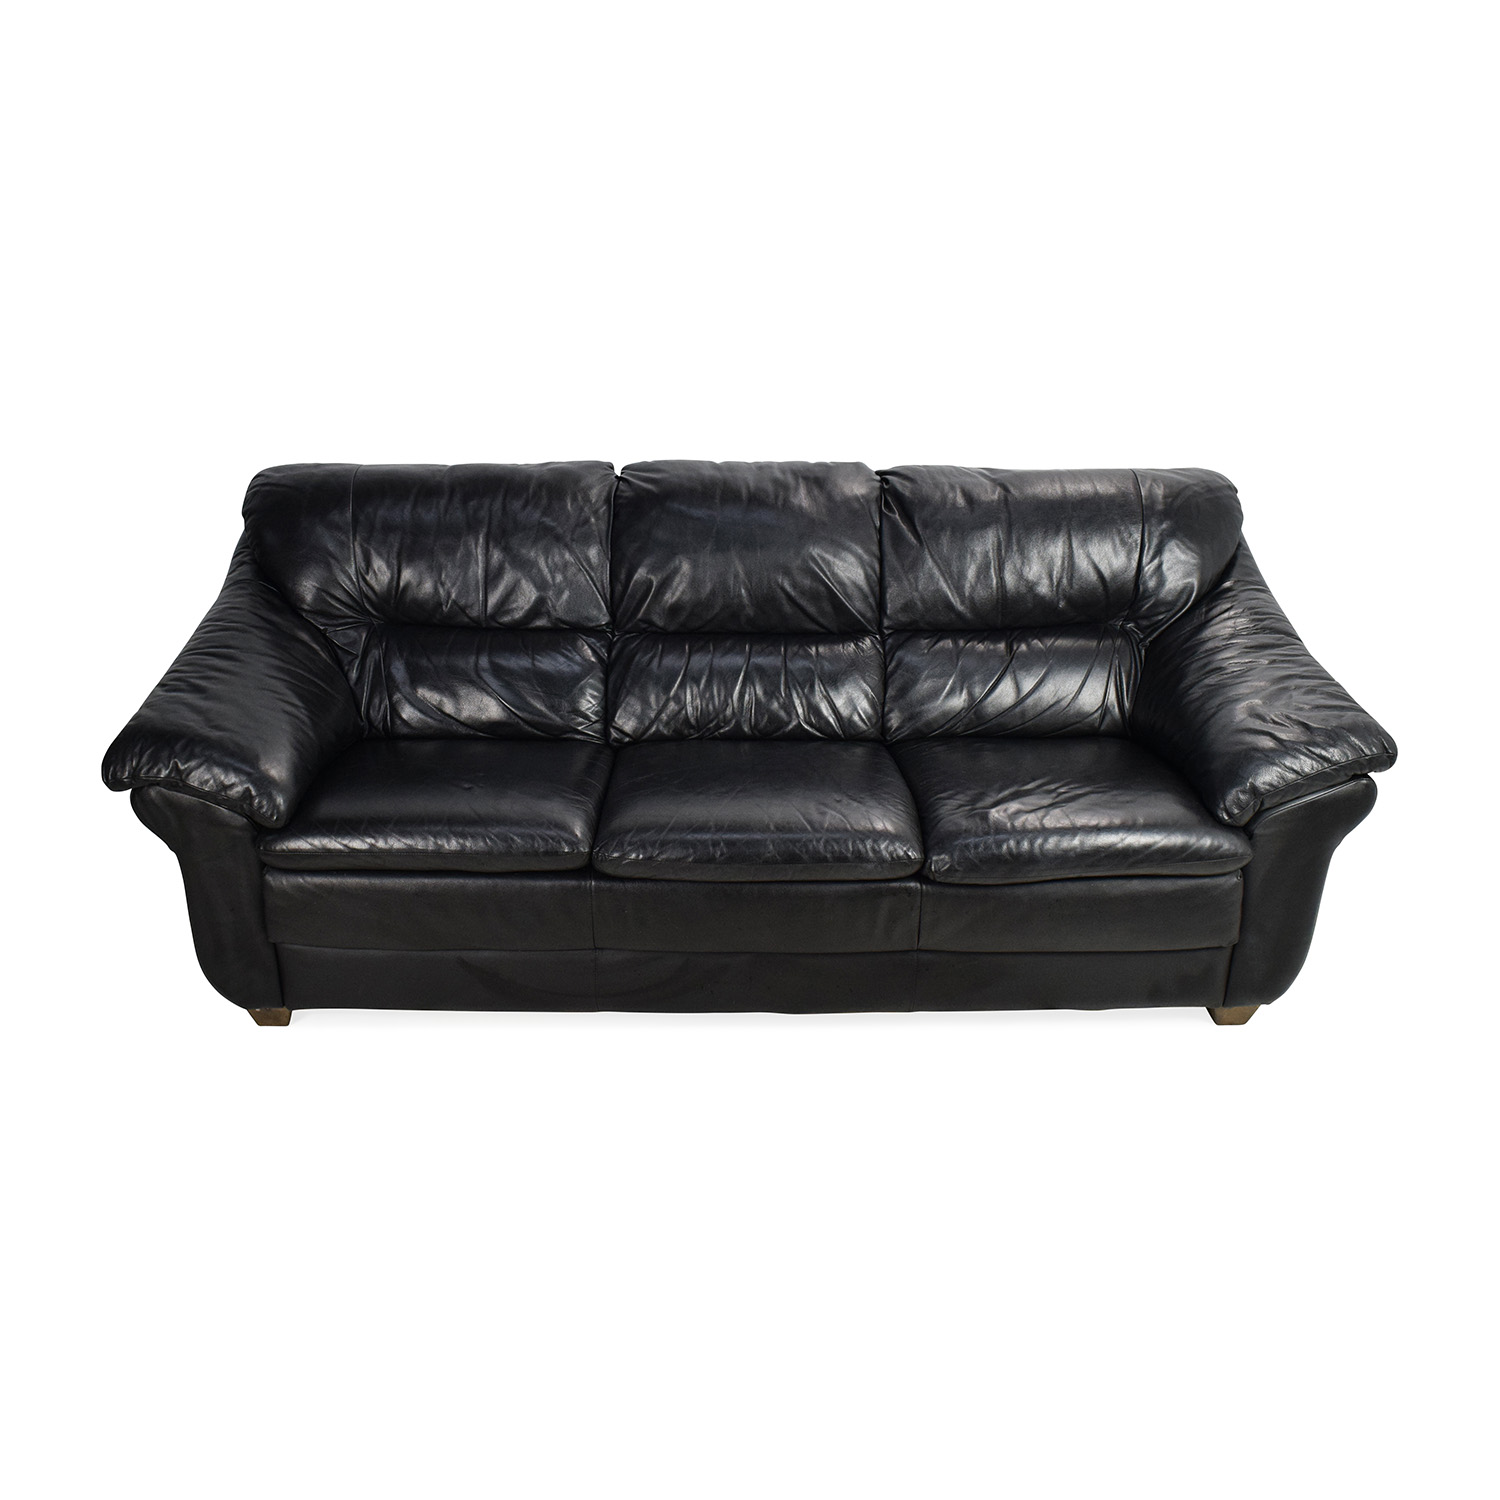 Natuzzi Italian Black Leather Sofa Second Hand